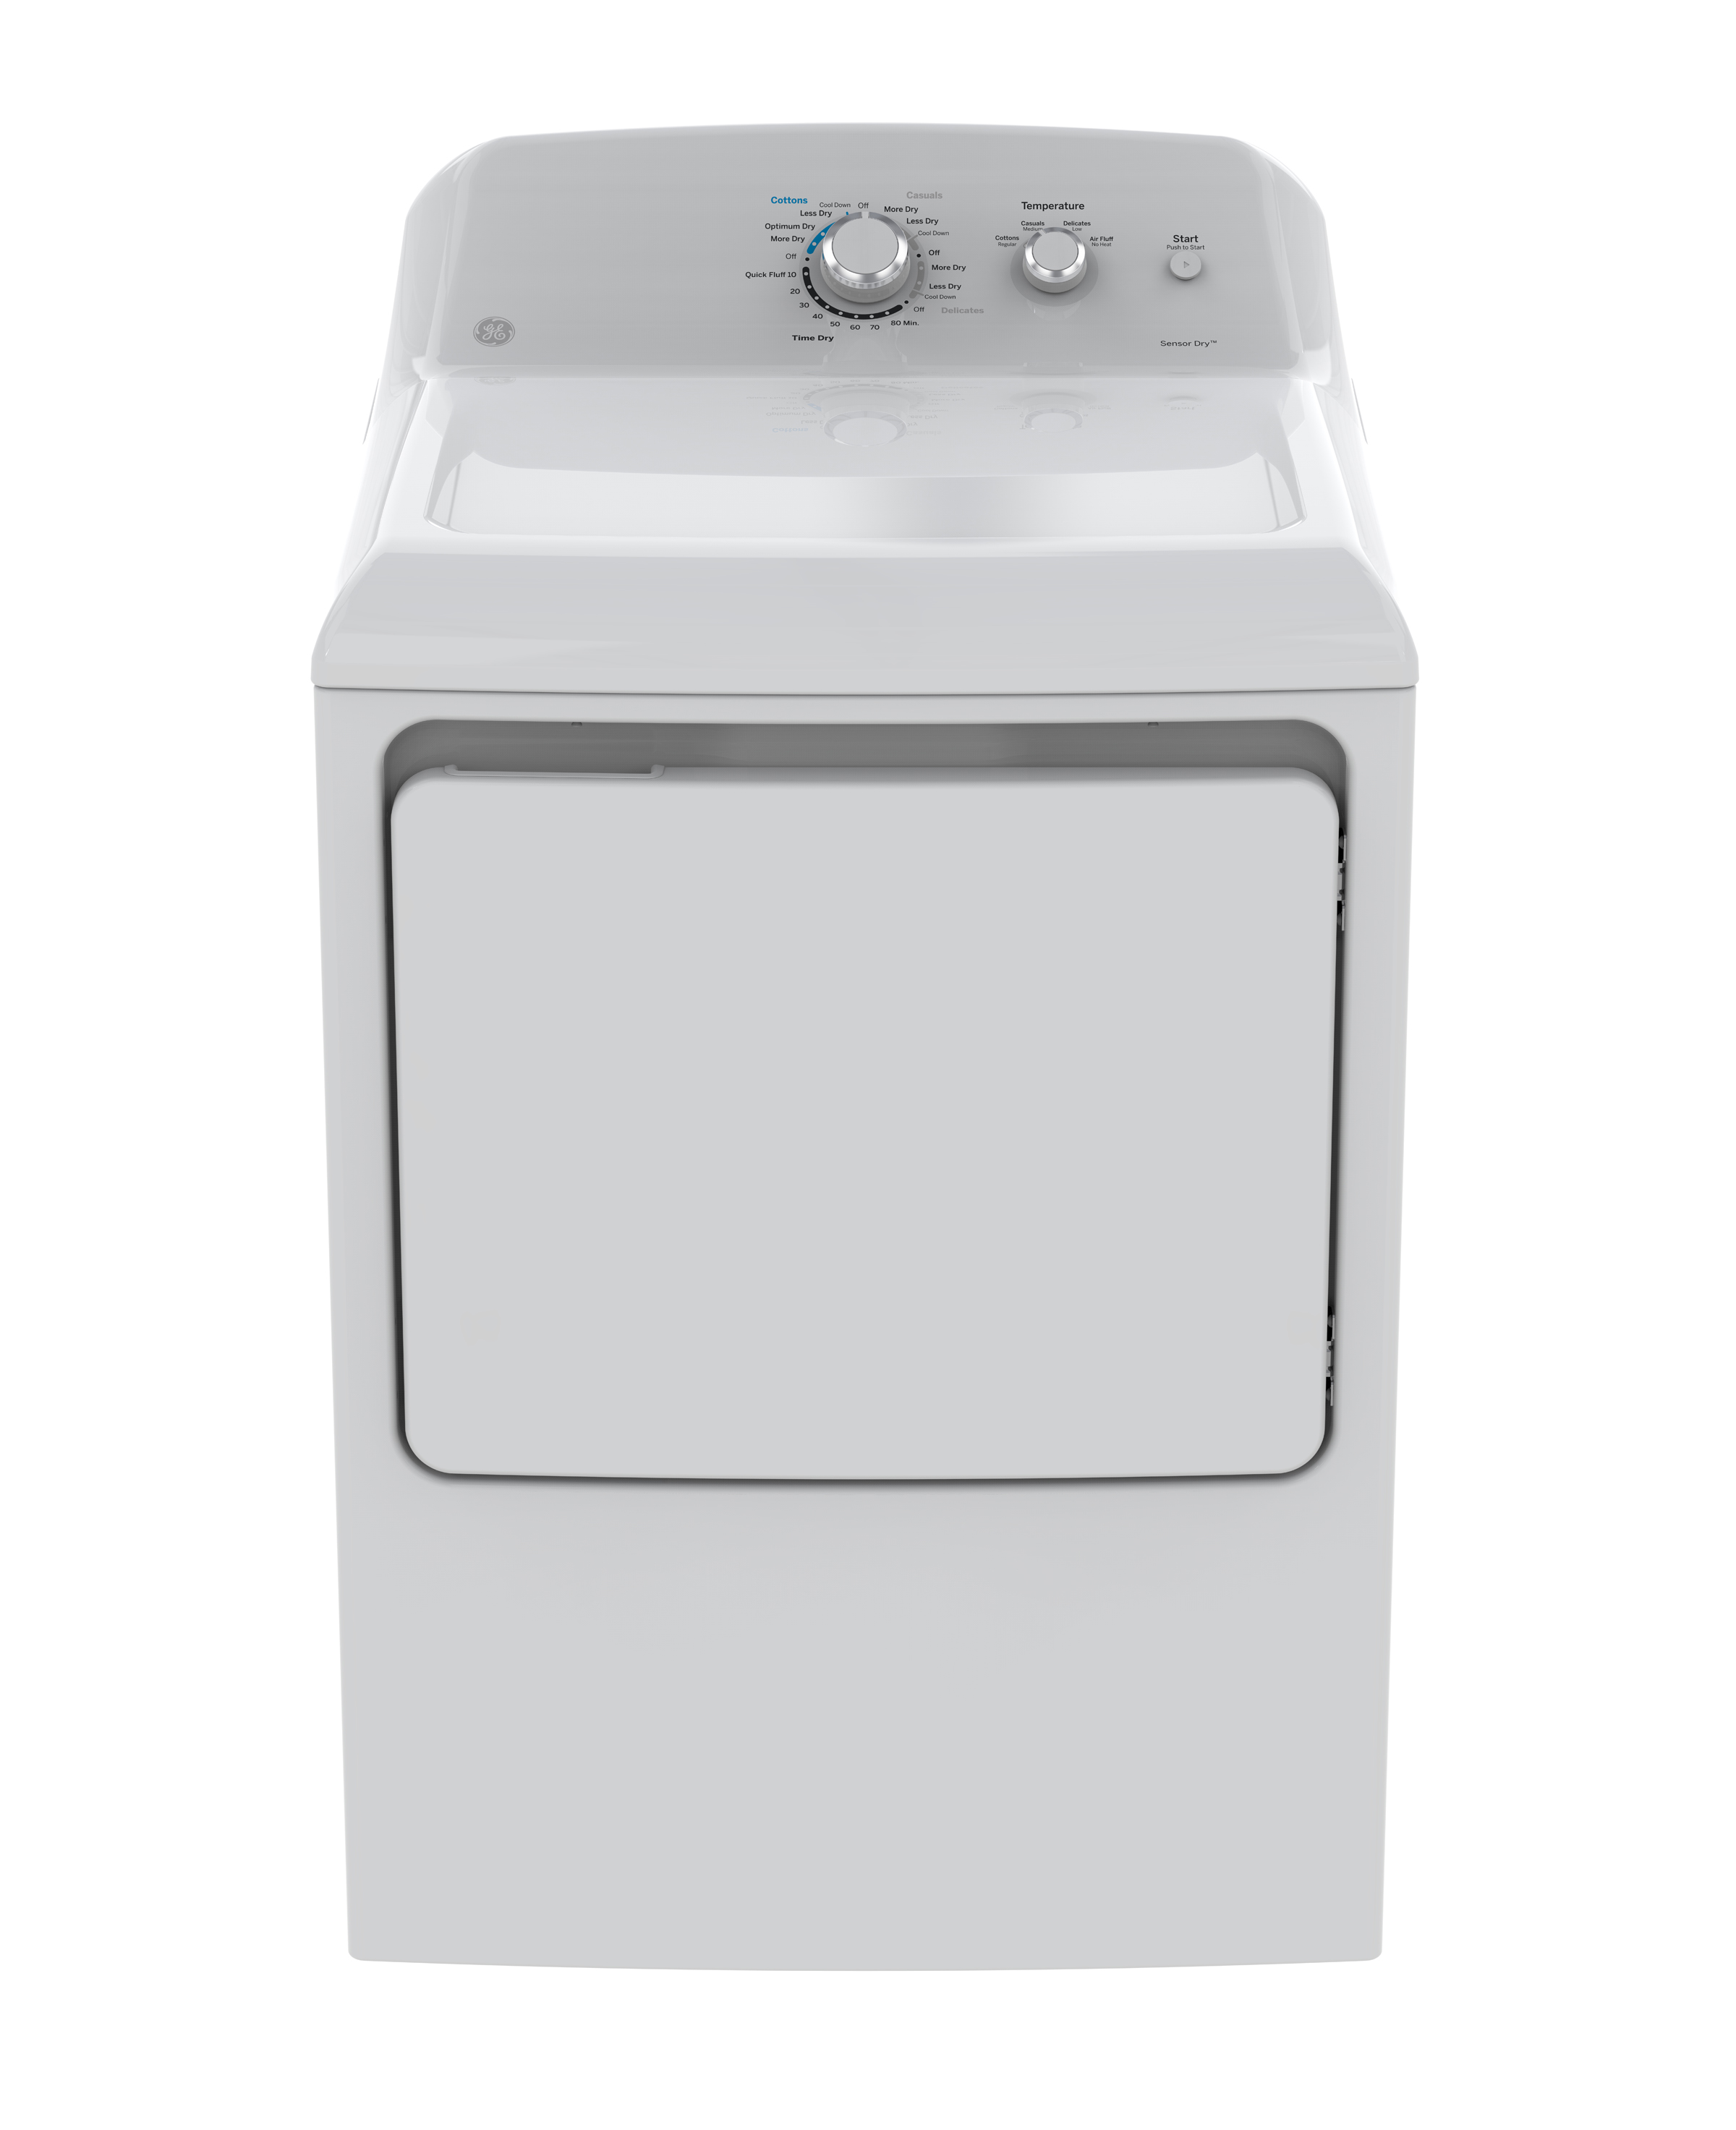 GE Dryer in White color showcased by Corbeil Electro Store